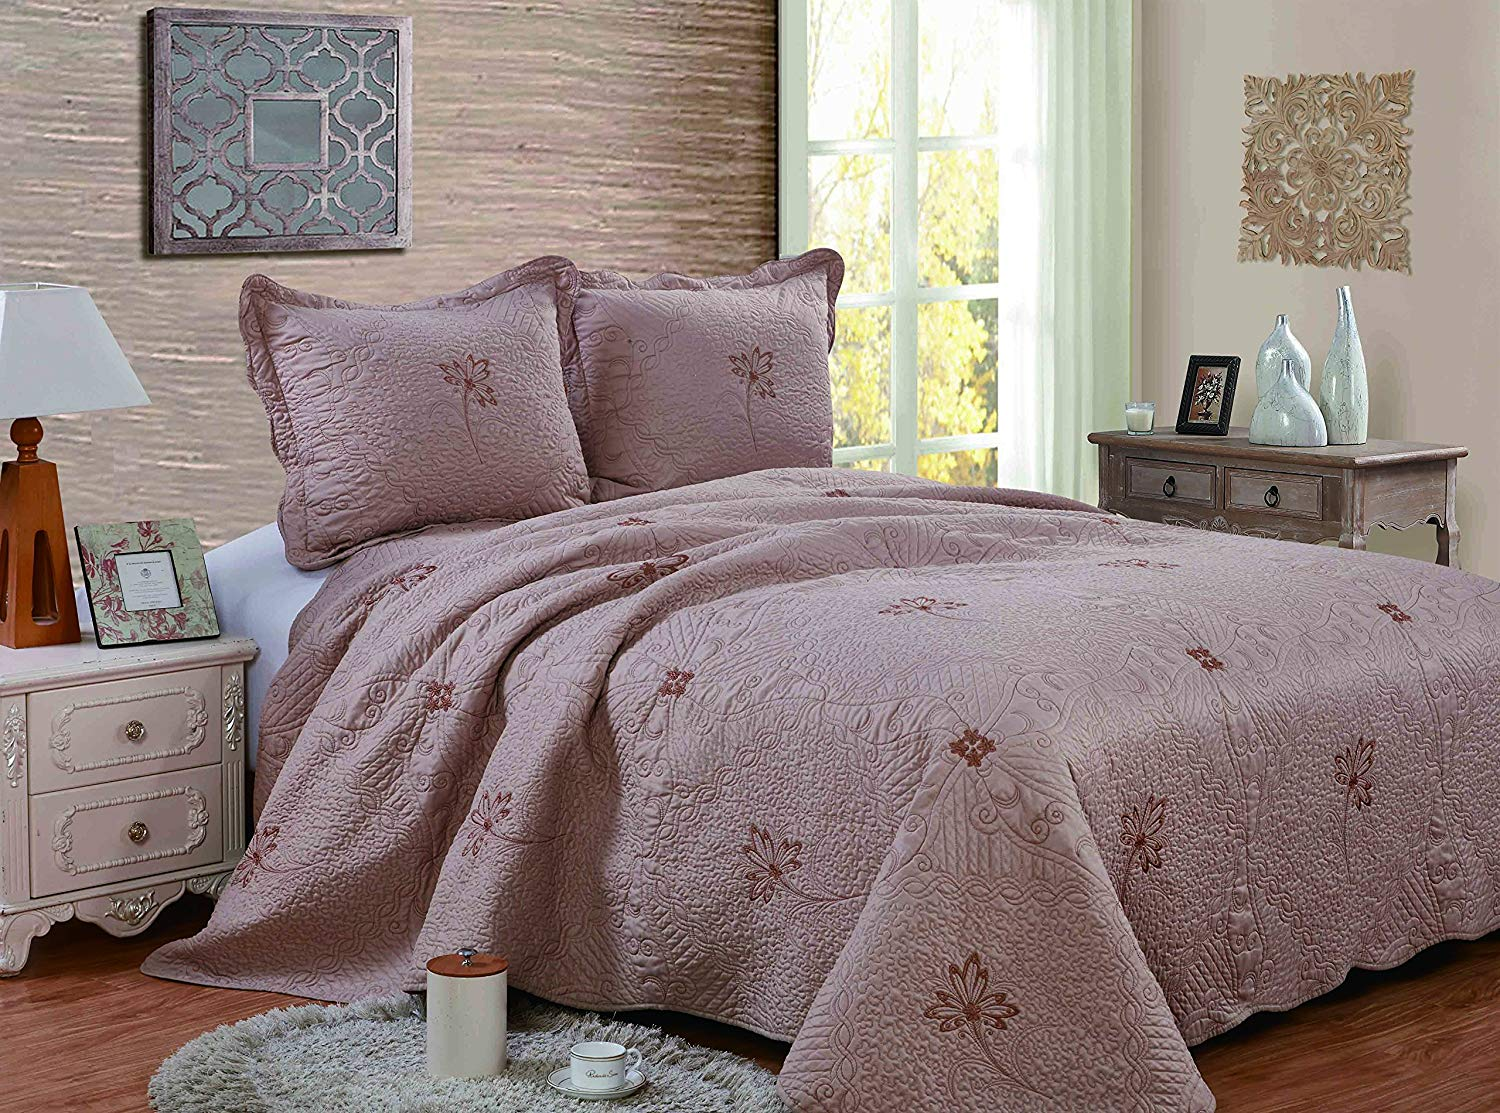 Get Quotations Qualitex Embroidery All Season Solid Color 3pcs Quilts Set Bedspreads Bed Coverlets Cover Sets Cal